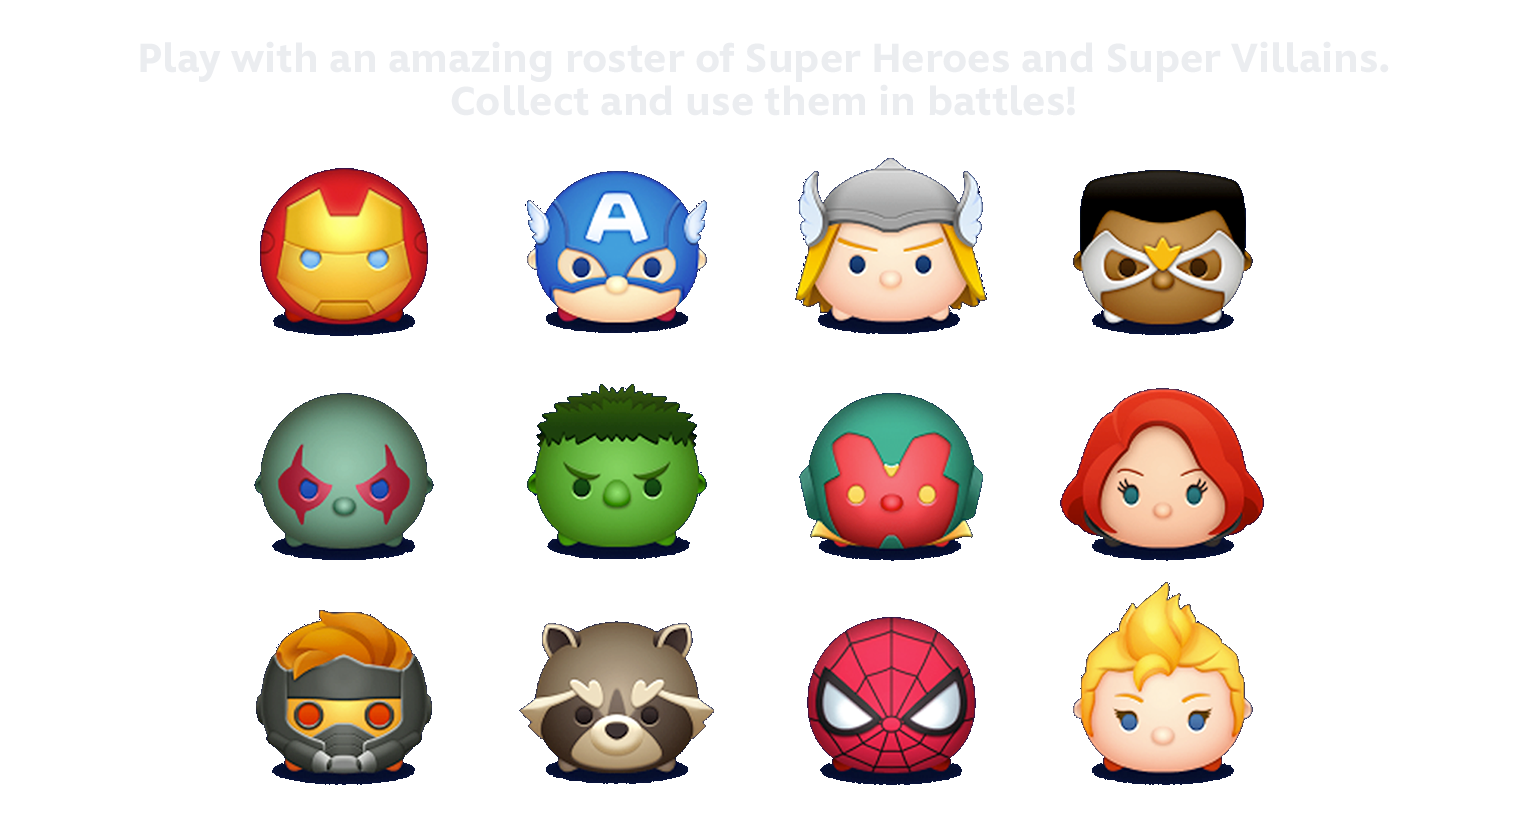 Star wars tsum tsum clipart image library download Marvel Tsum Tsum | Disney Apps | Indonesia image library download